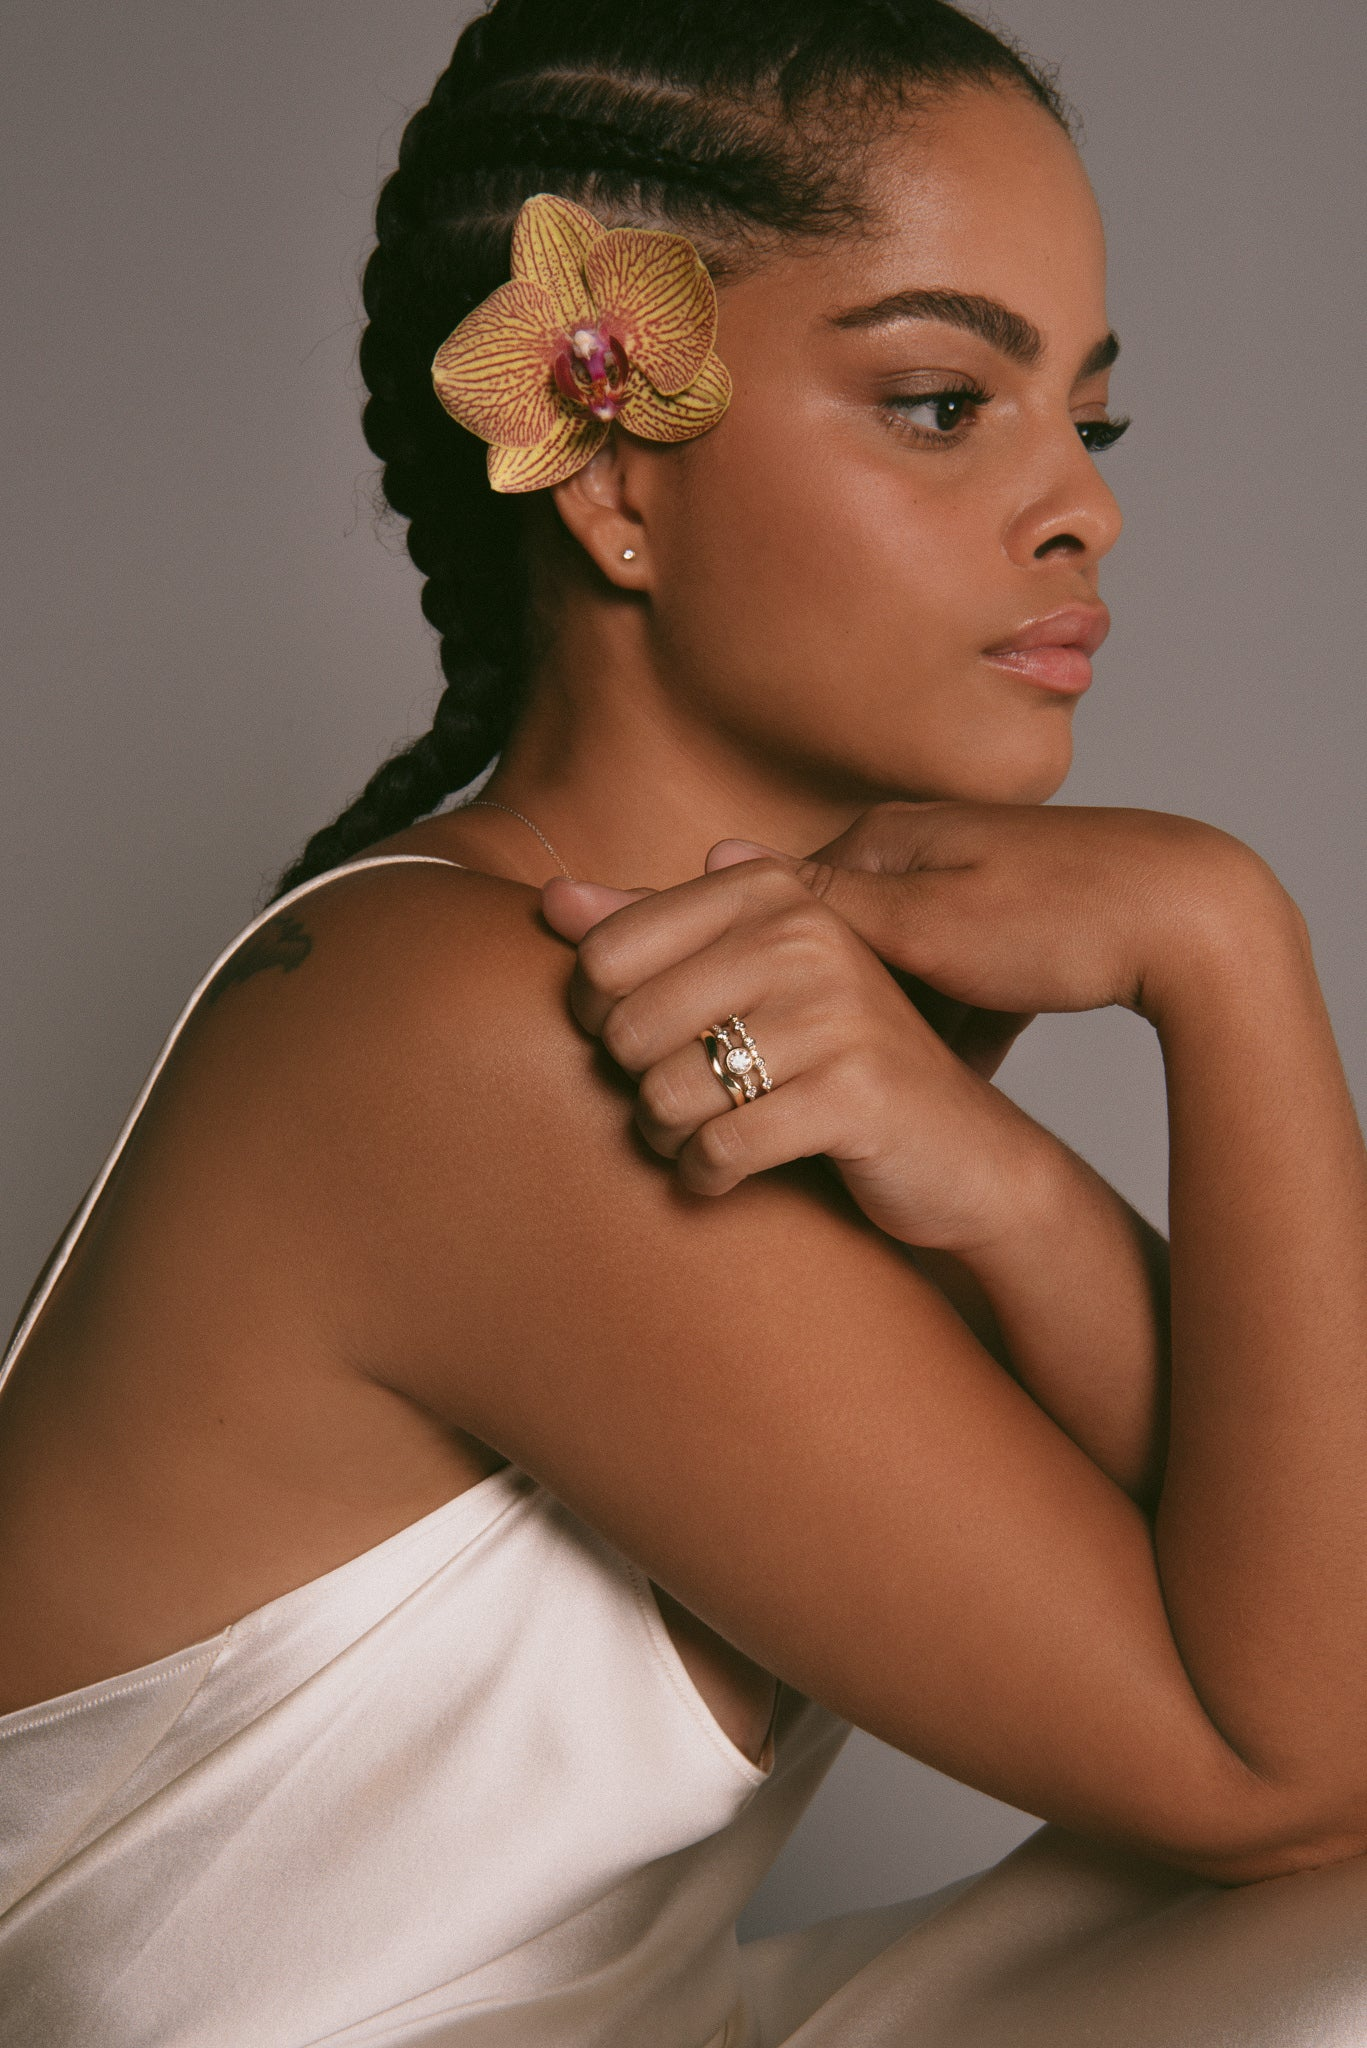 Lyl with an orchid in her hair in a white silk dress.